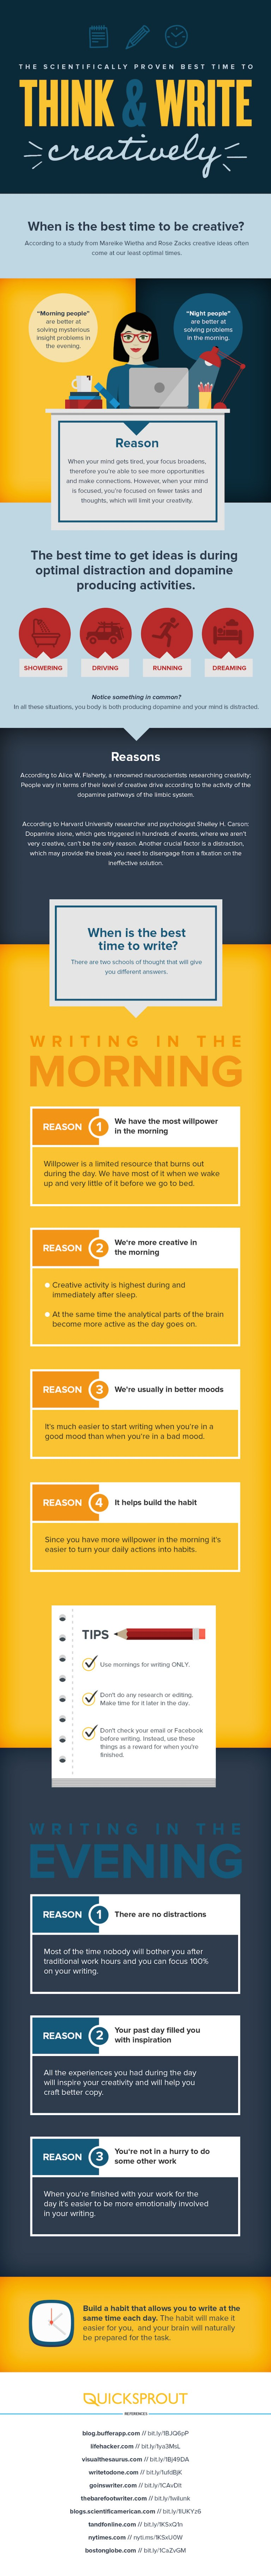 Best-Time-To-Write-Infographic-QuickSprout